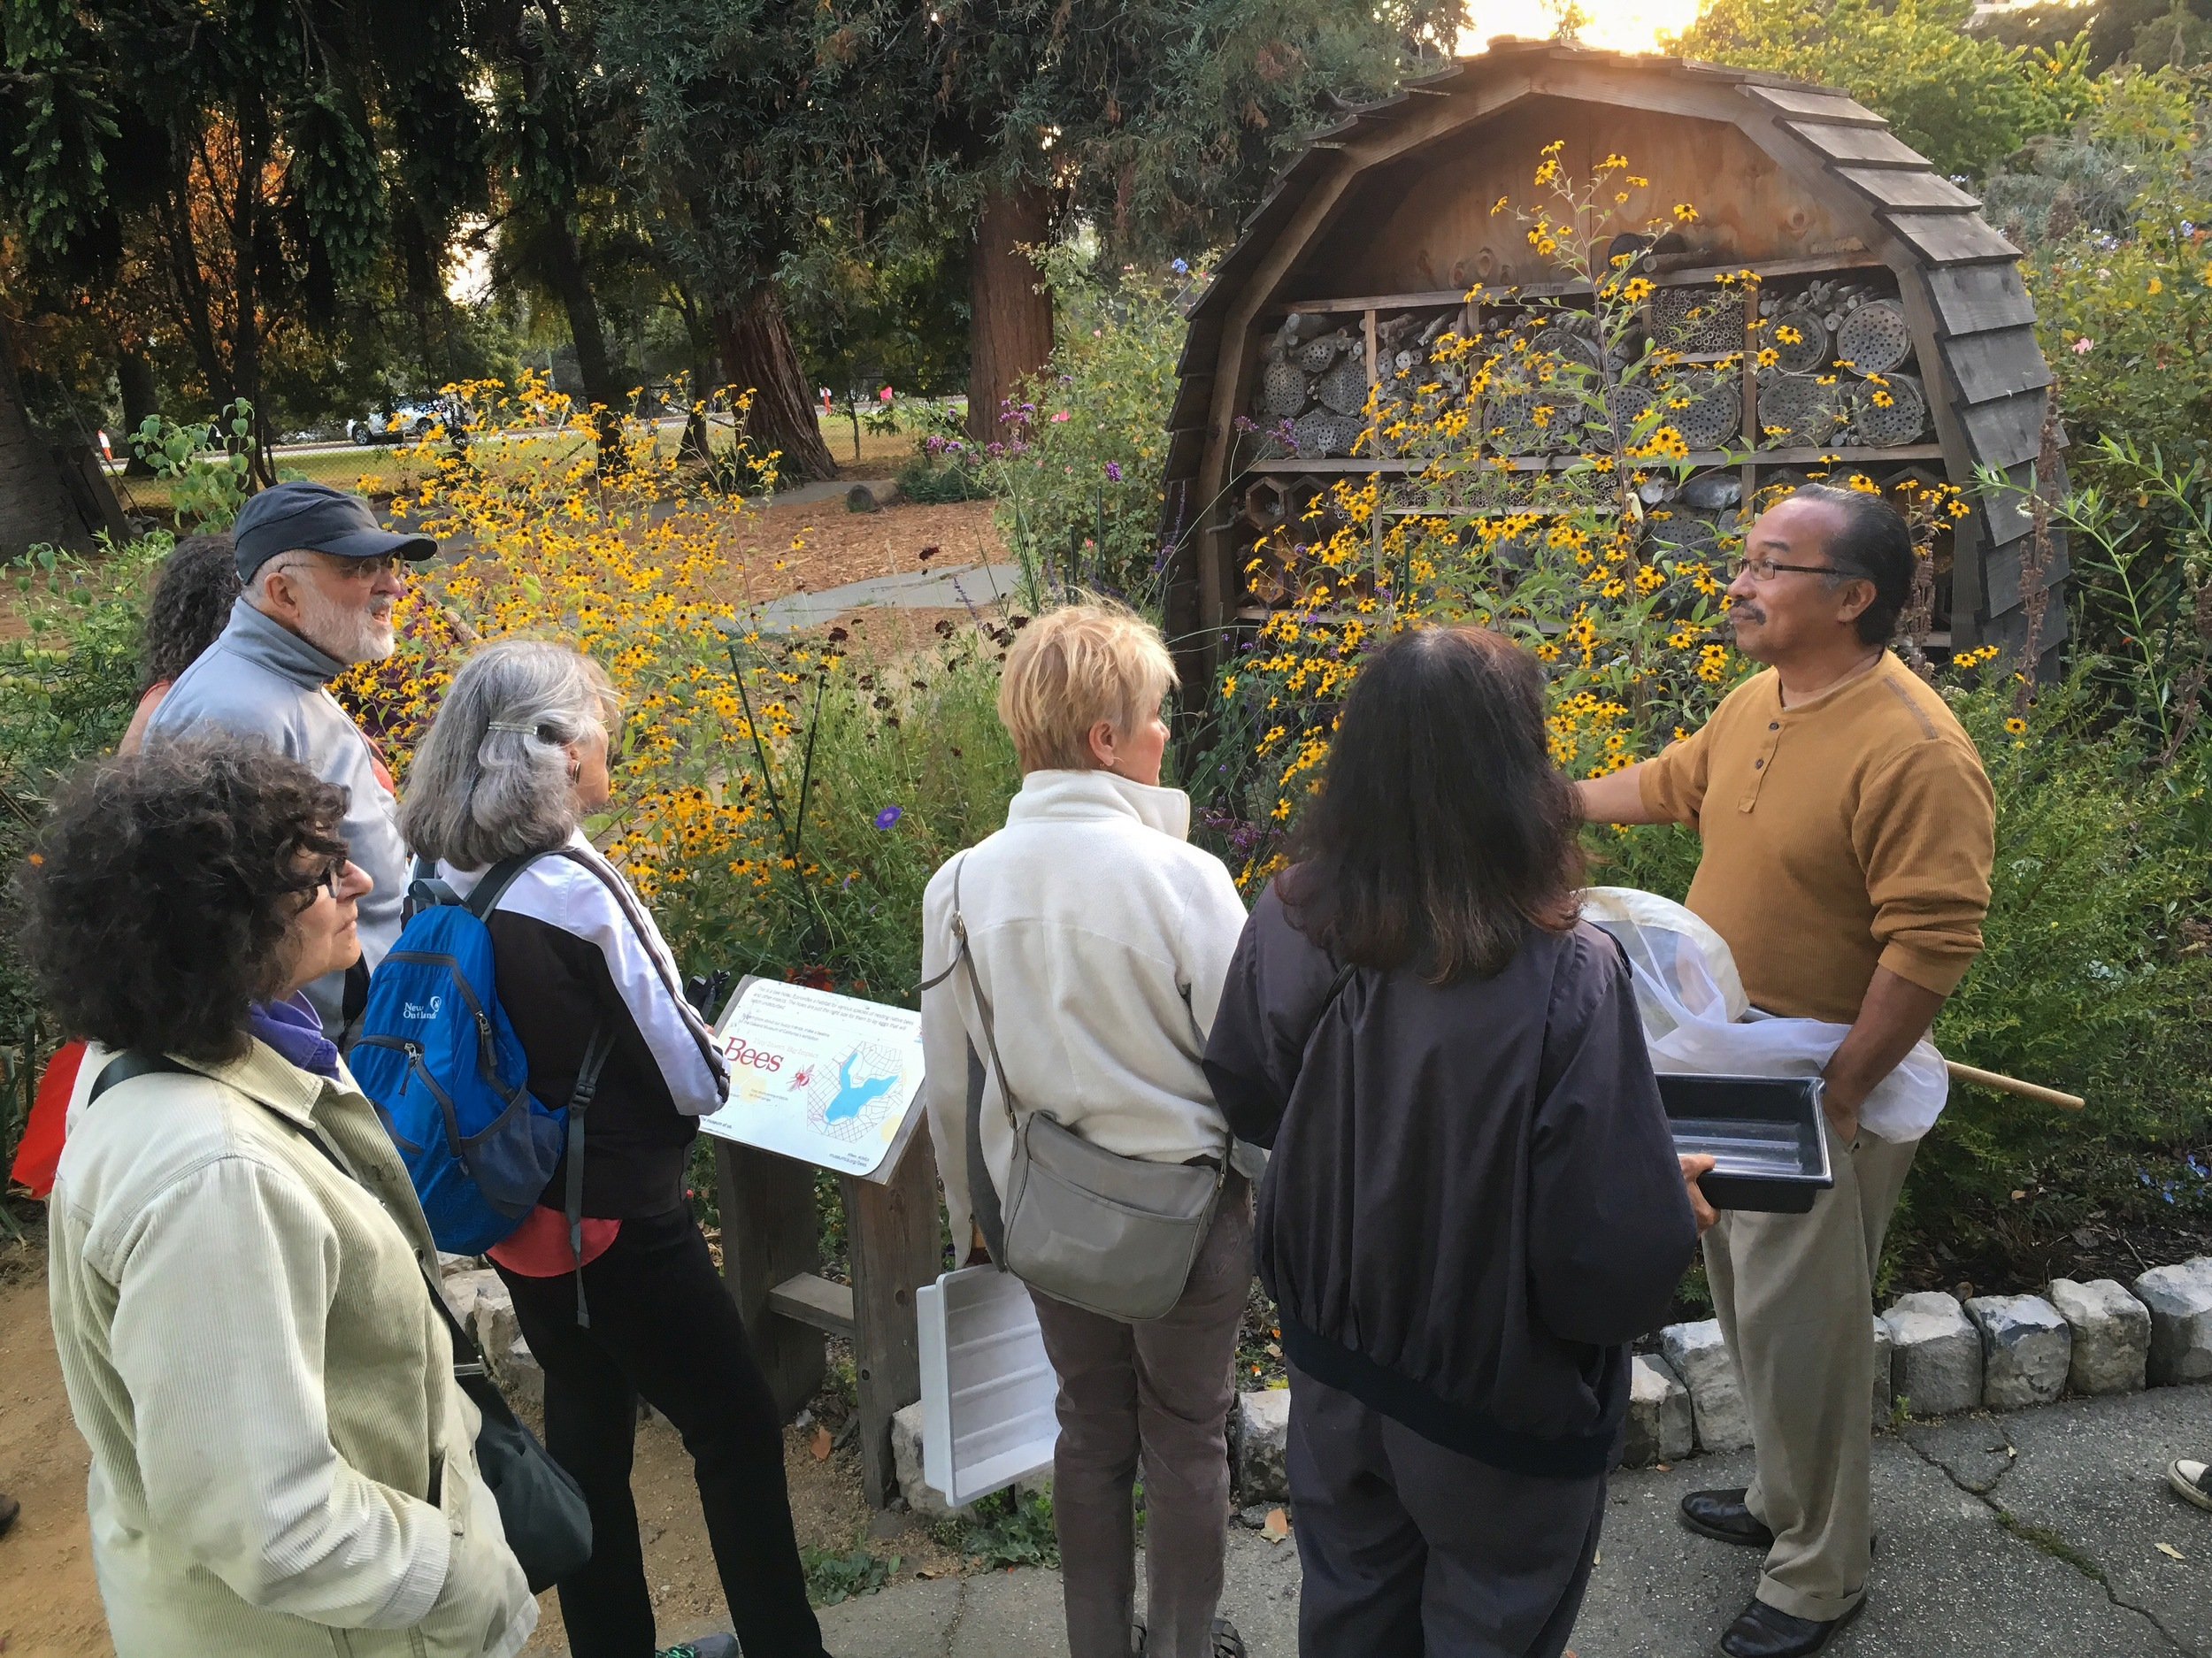 ISMC's Executive Director Eddie Dunbar and workshop attendees in front of the Bee Hotel